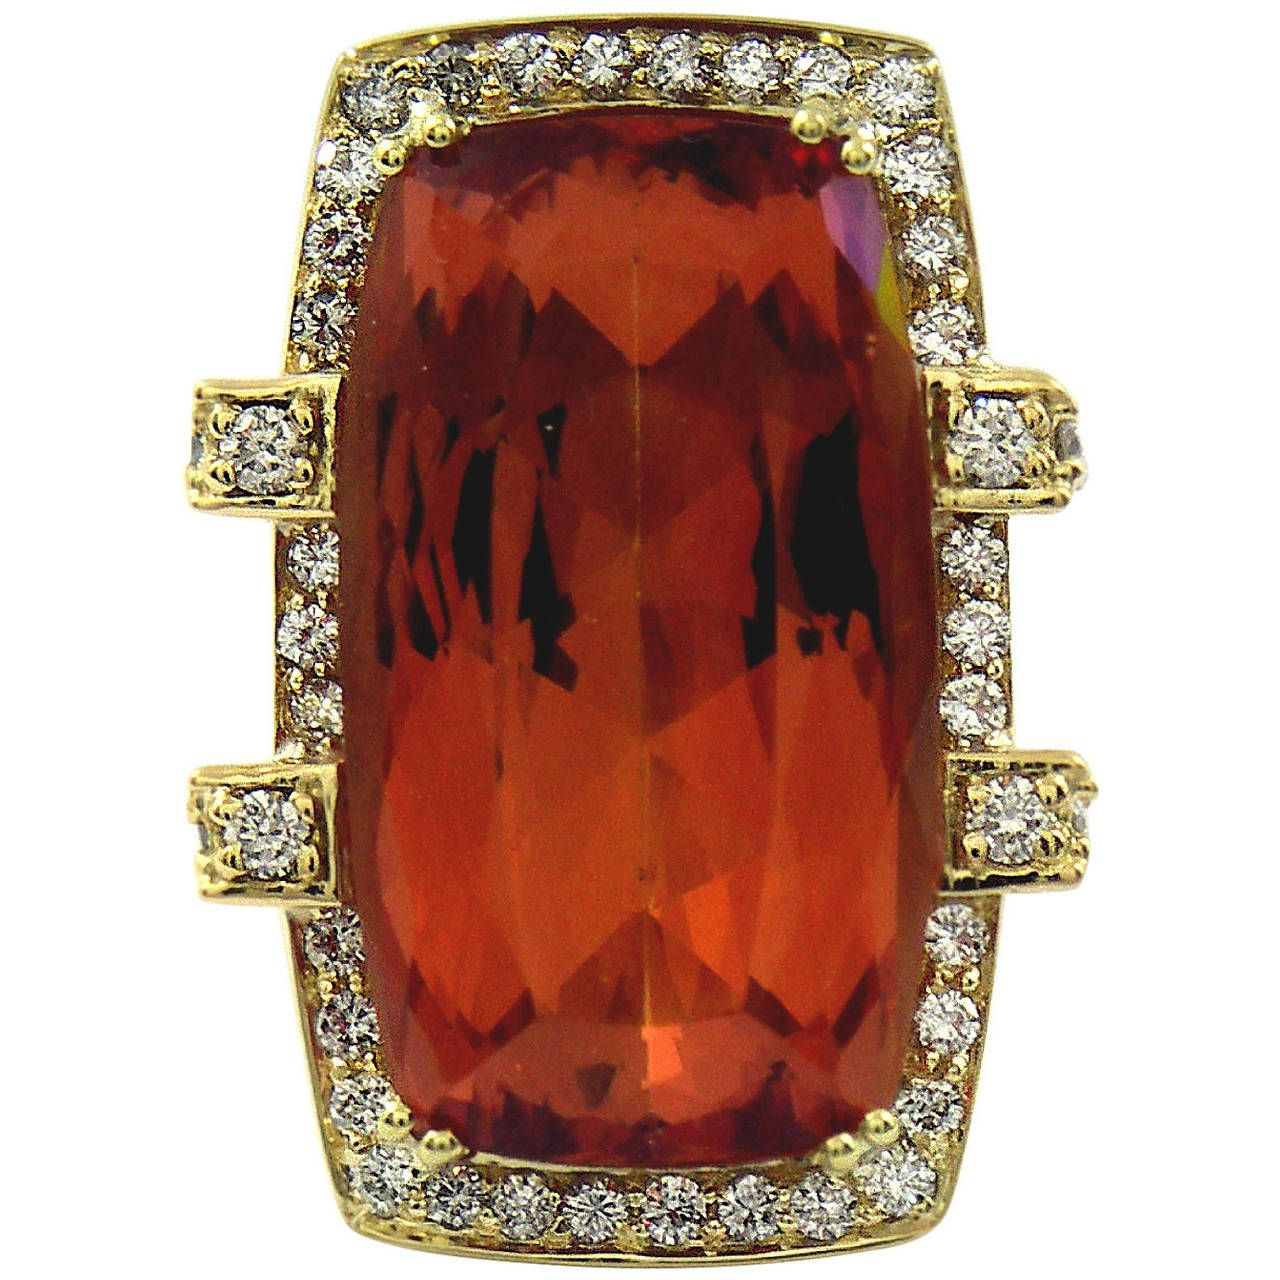 33 Carat GIA Cert Imperial Topaz Diamond Gold Ring | From a unique collection of vintage more rings at https://www.1stdibs.com/jewelry/rings/more-rings/